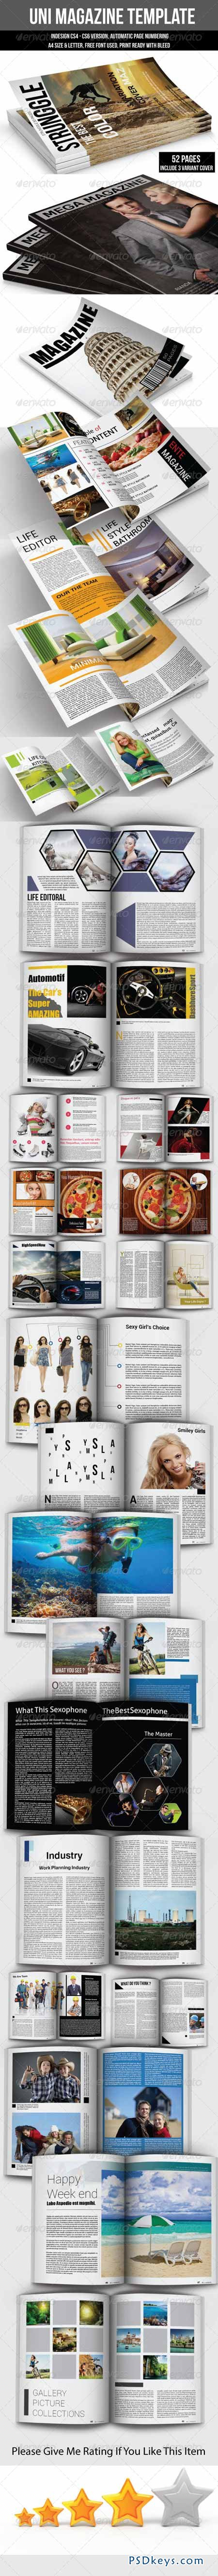 UNI Magazine Template 6653052